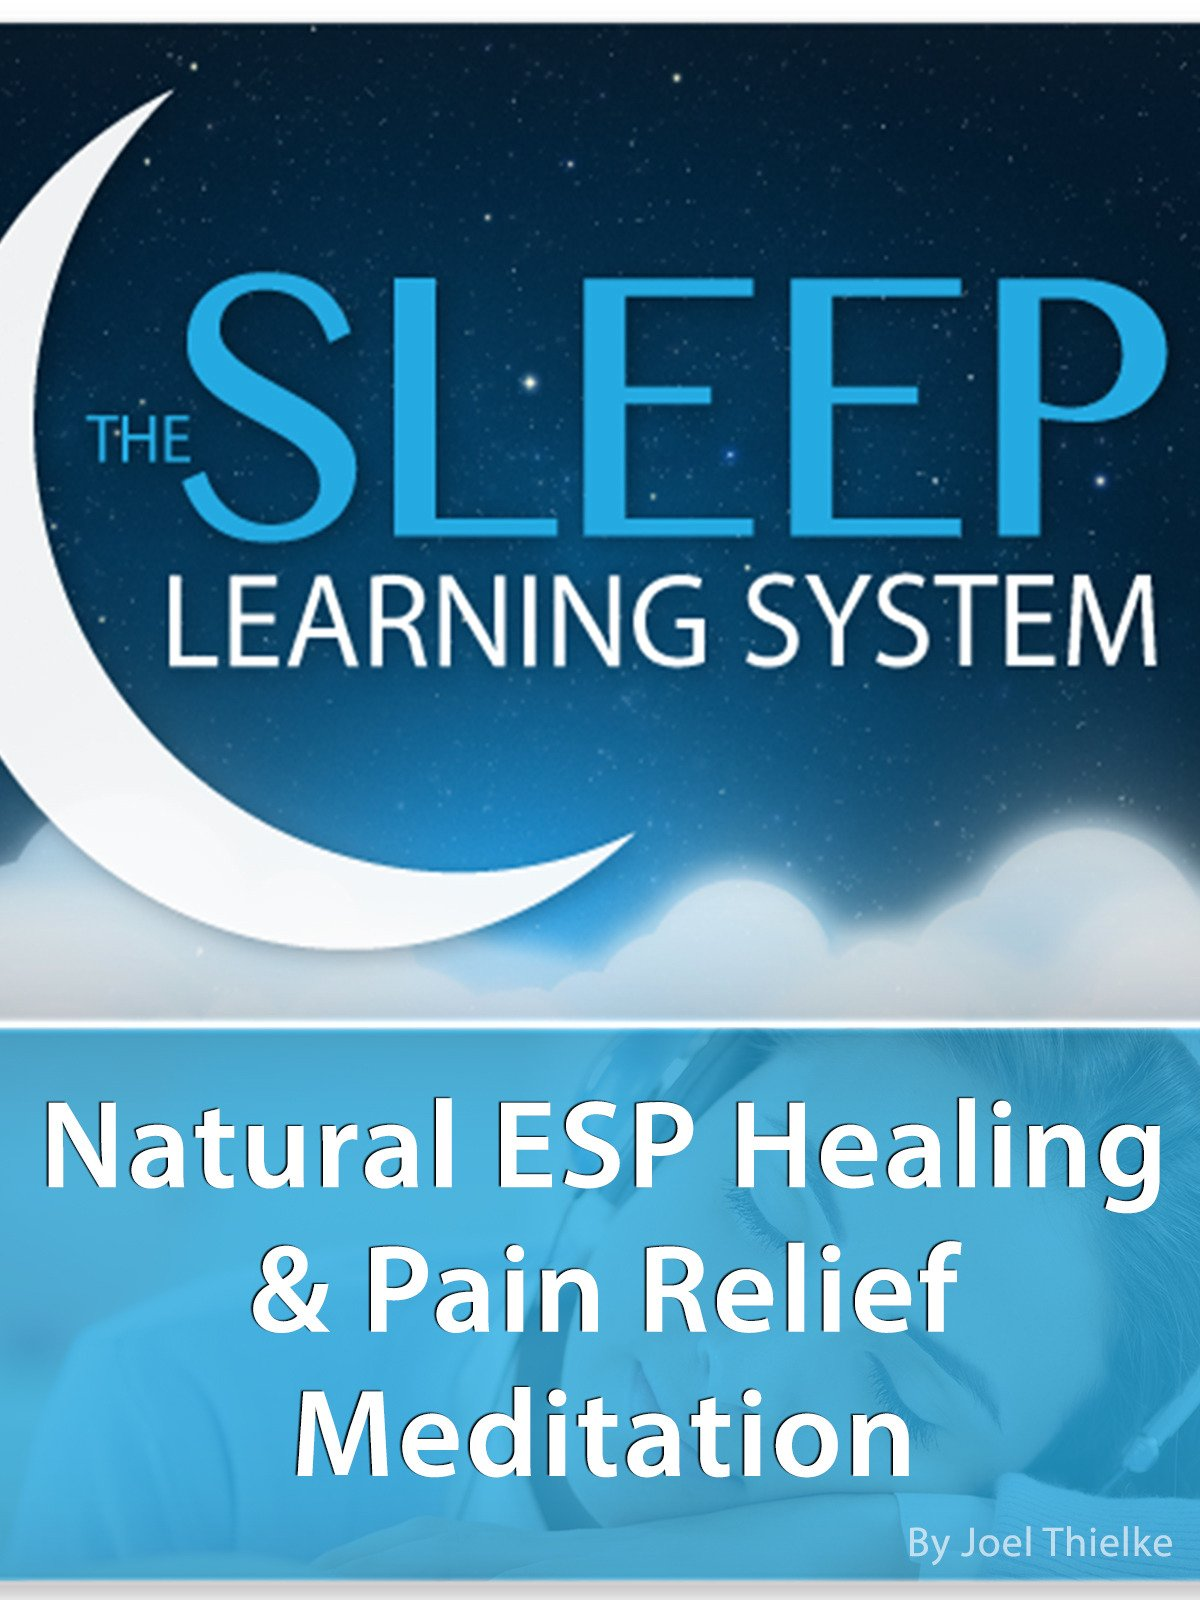 Natural ESP Healing & Pain Relief, Meditation